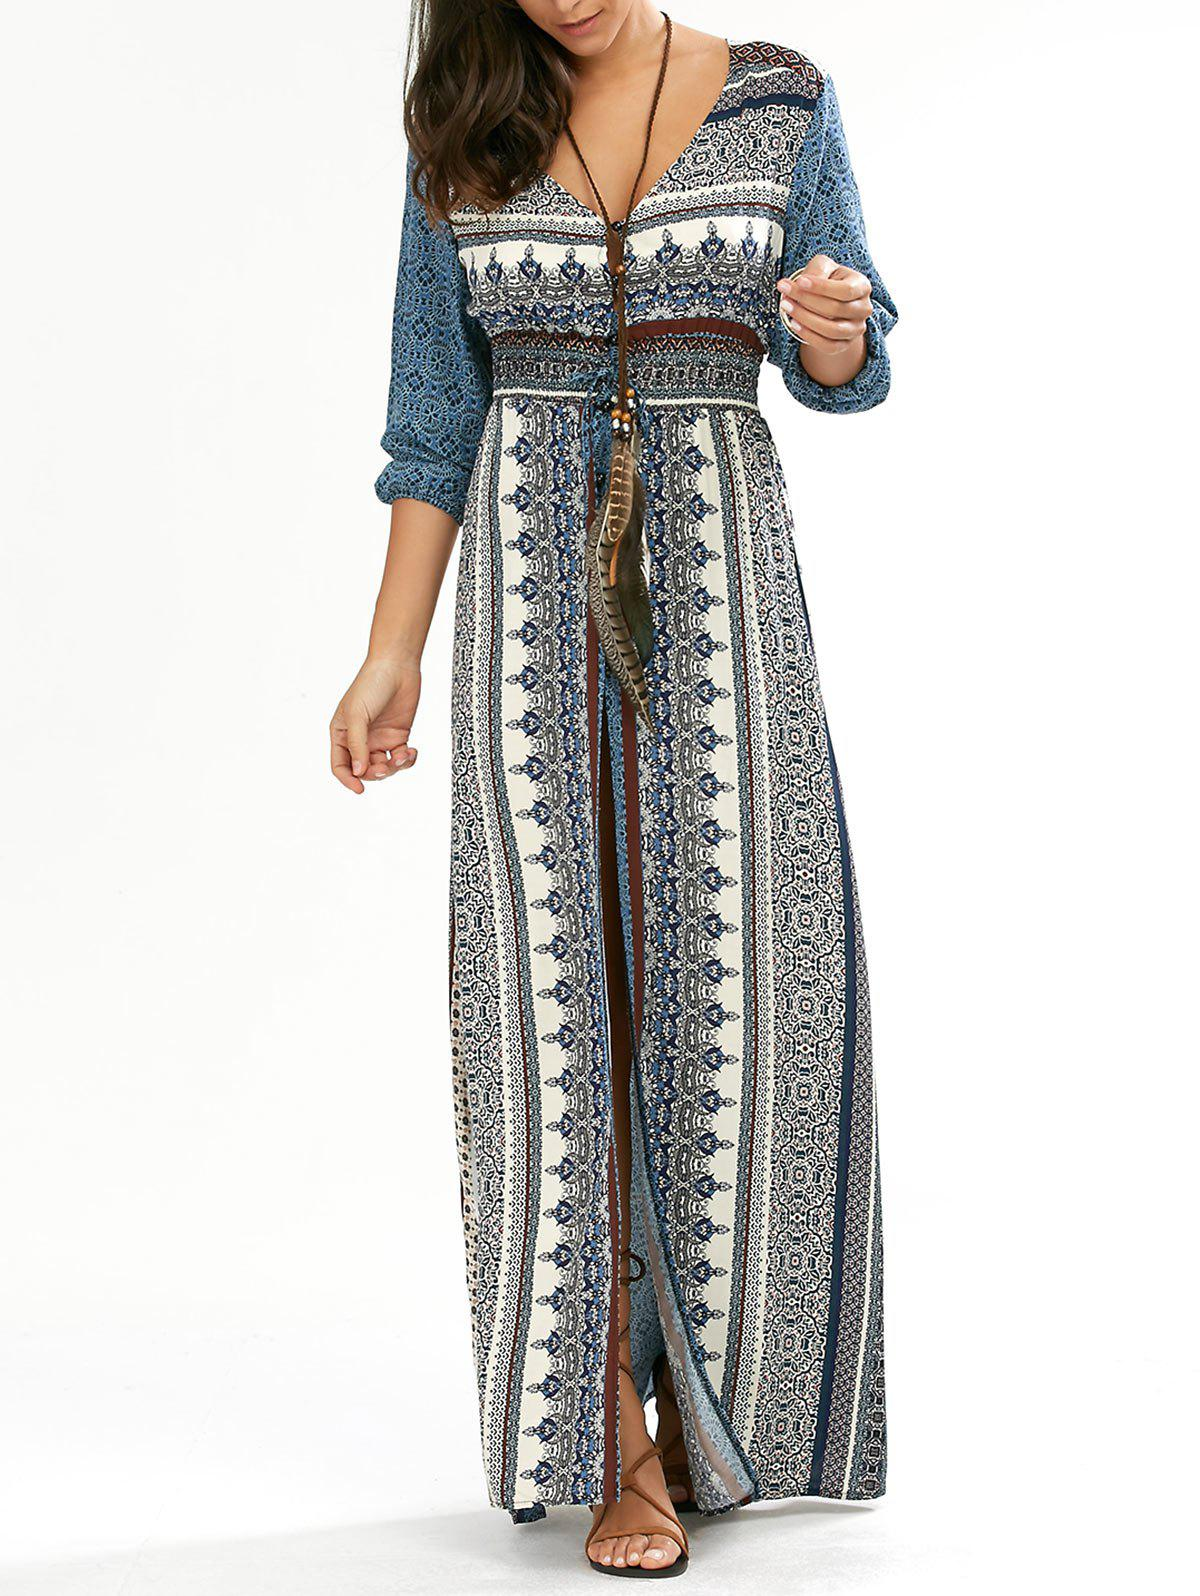 Button Down V Neck Long Boho Dress with SplitWOMEN<br><br>Size: L; Color: BLUE; Style: Bohemian; Material: Cotton Blend,Polyester; Silhouette: Beach; Dresses Length: Floor-Length; Neckline: V-Neck; Sleeve Length: 3/4 Length Sleeves; Waist: Empire; Embellishment: Button; Pattern Type: Print; With Belt: No; Season: Fall,Spring,Summer; Weight: 0.3800kg; Package Contents: 1 x Dress;